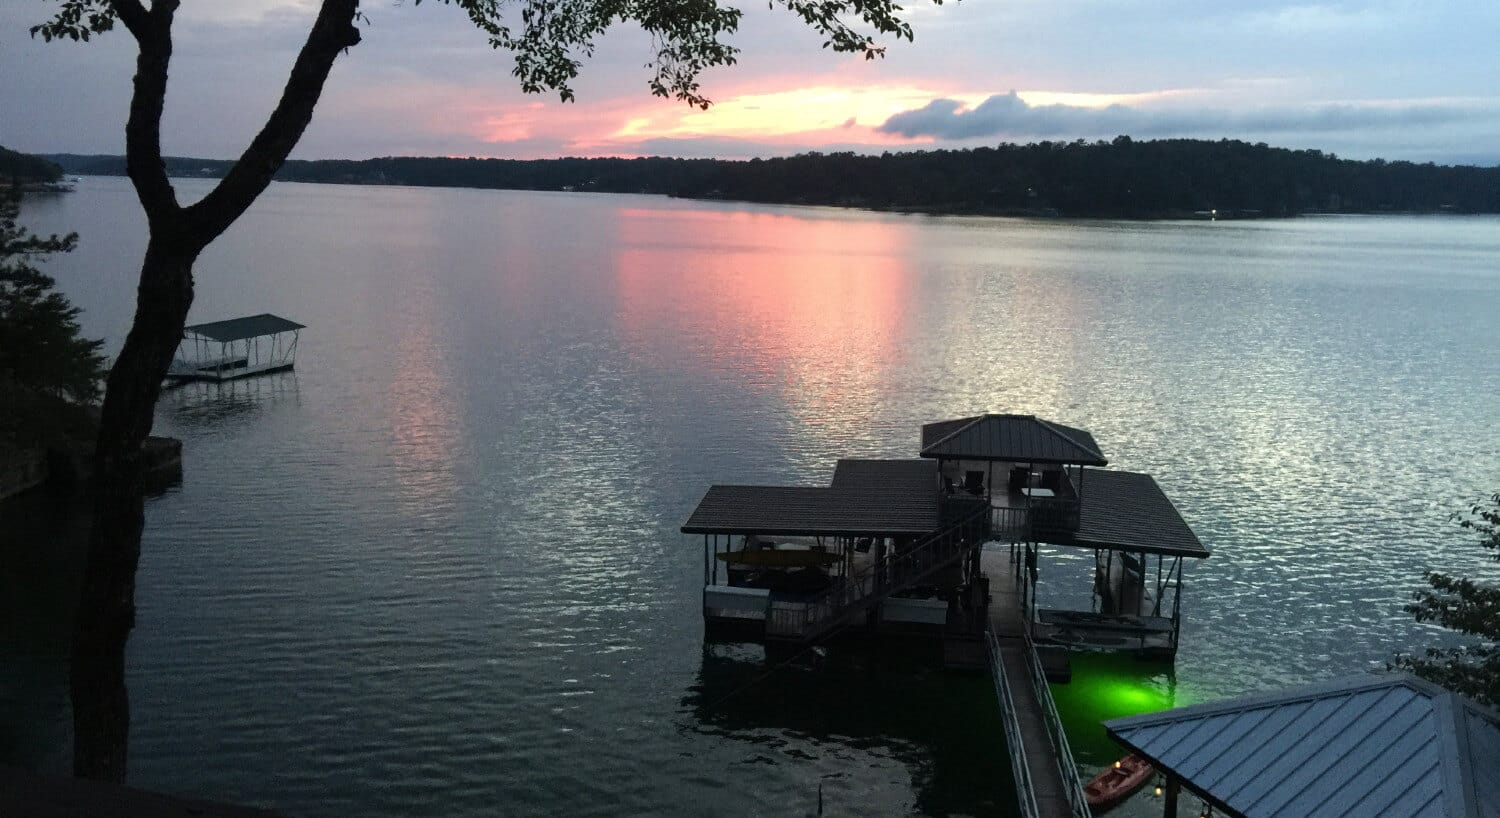 View of lake and underwater light next to a pontoon boat at evening.